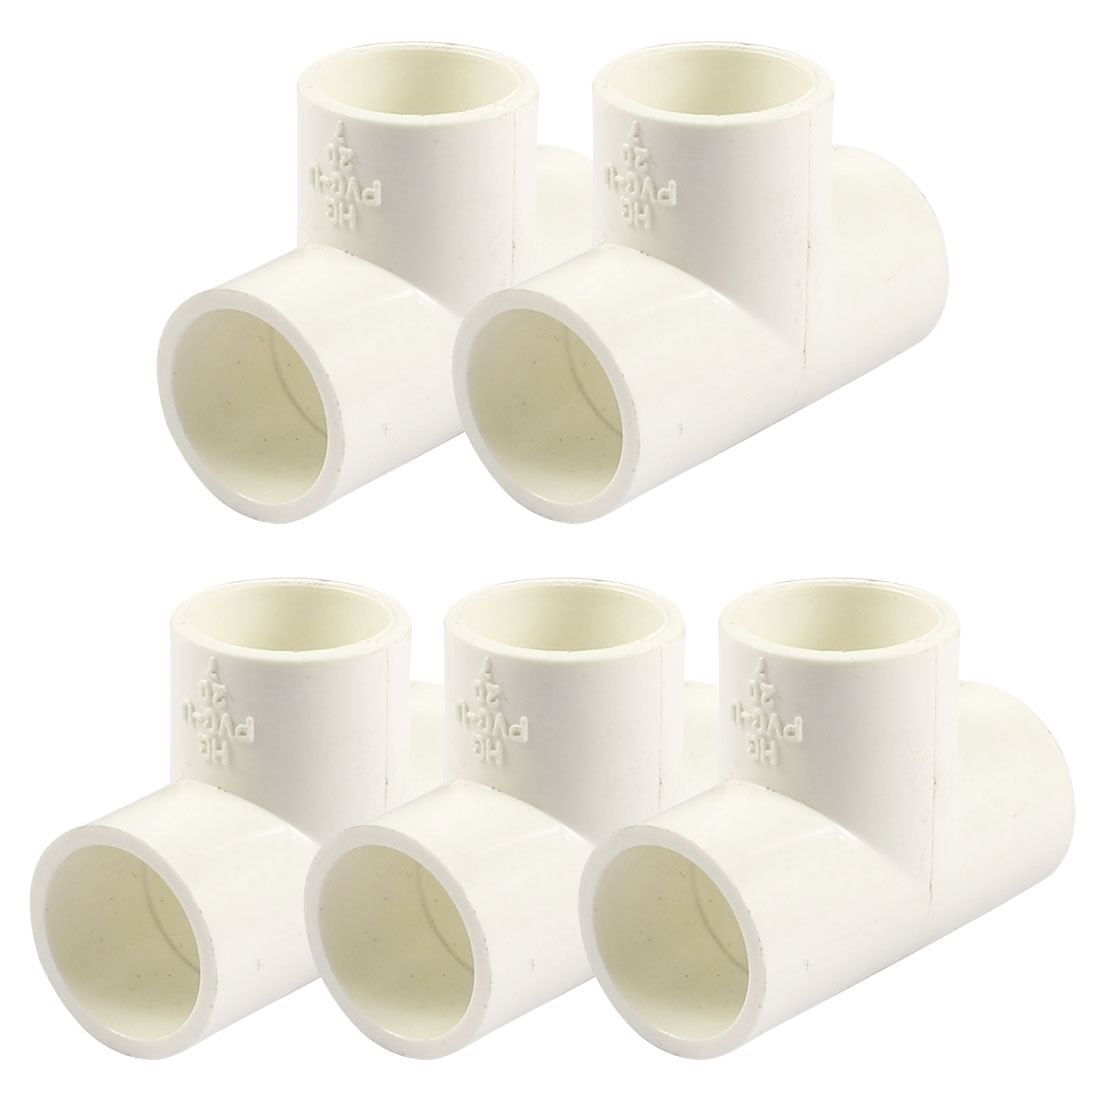 20mm PVC Tee 3 Way Water Pipe Tube Adapter Connectors White 5 Pcs